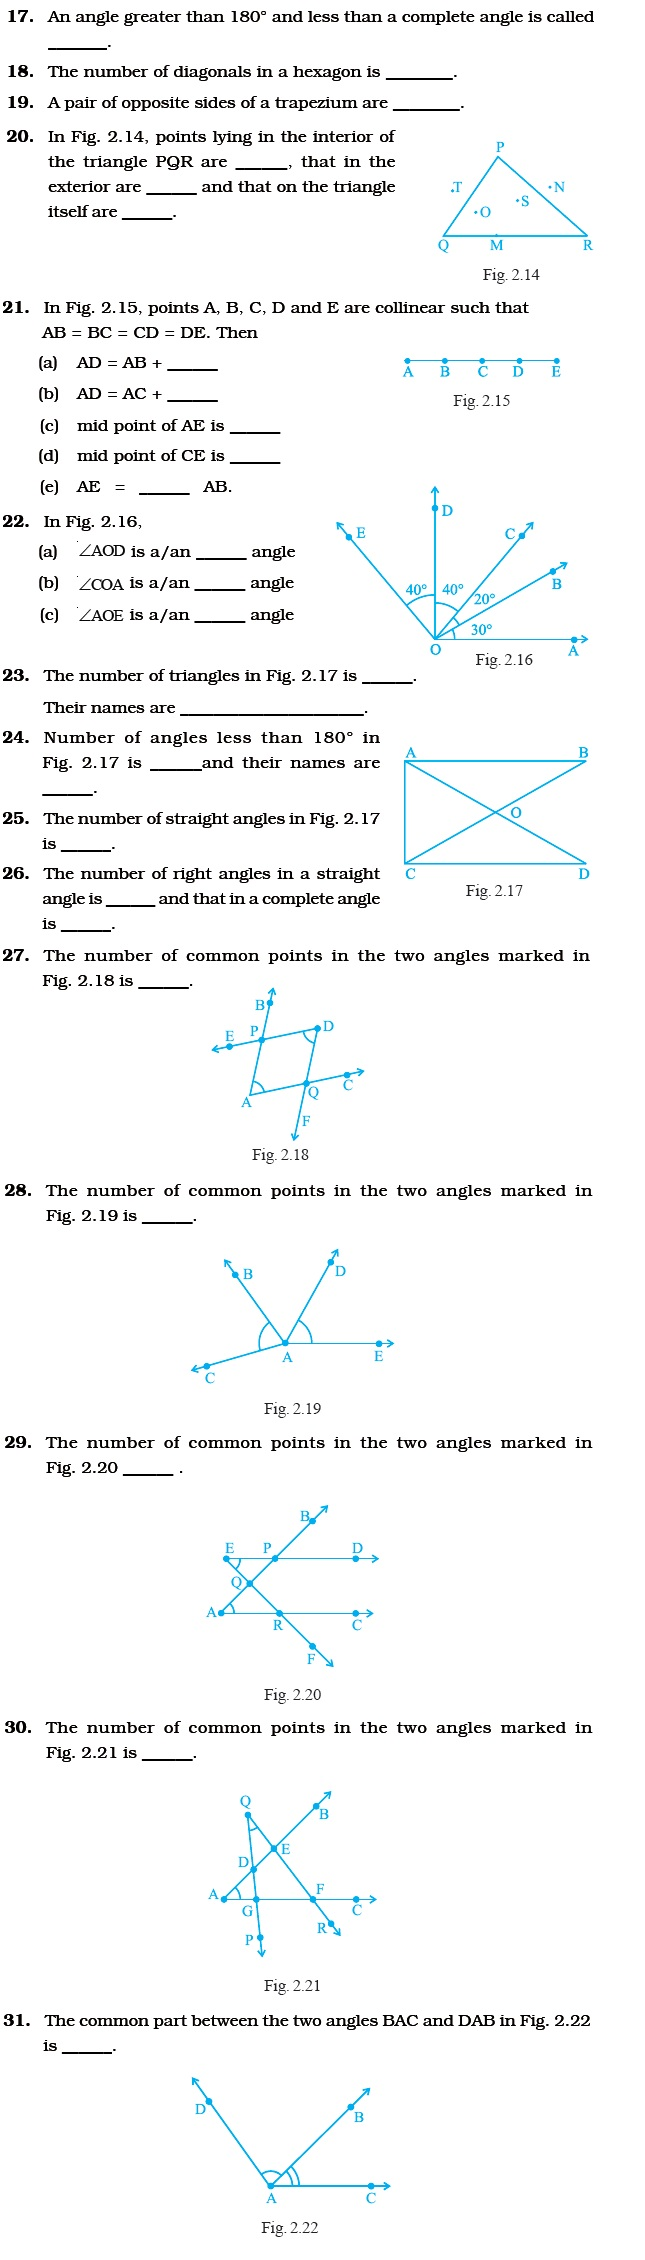 Class 6 Important Questions for Maths – Geometry | AglaSem Schools